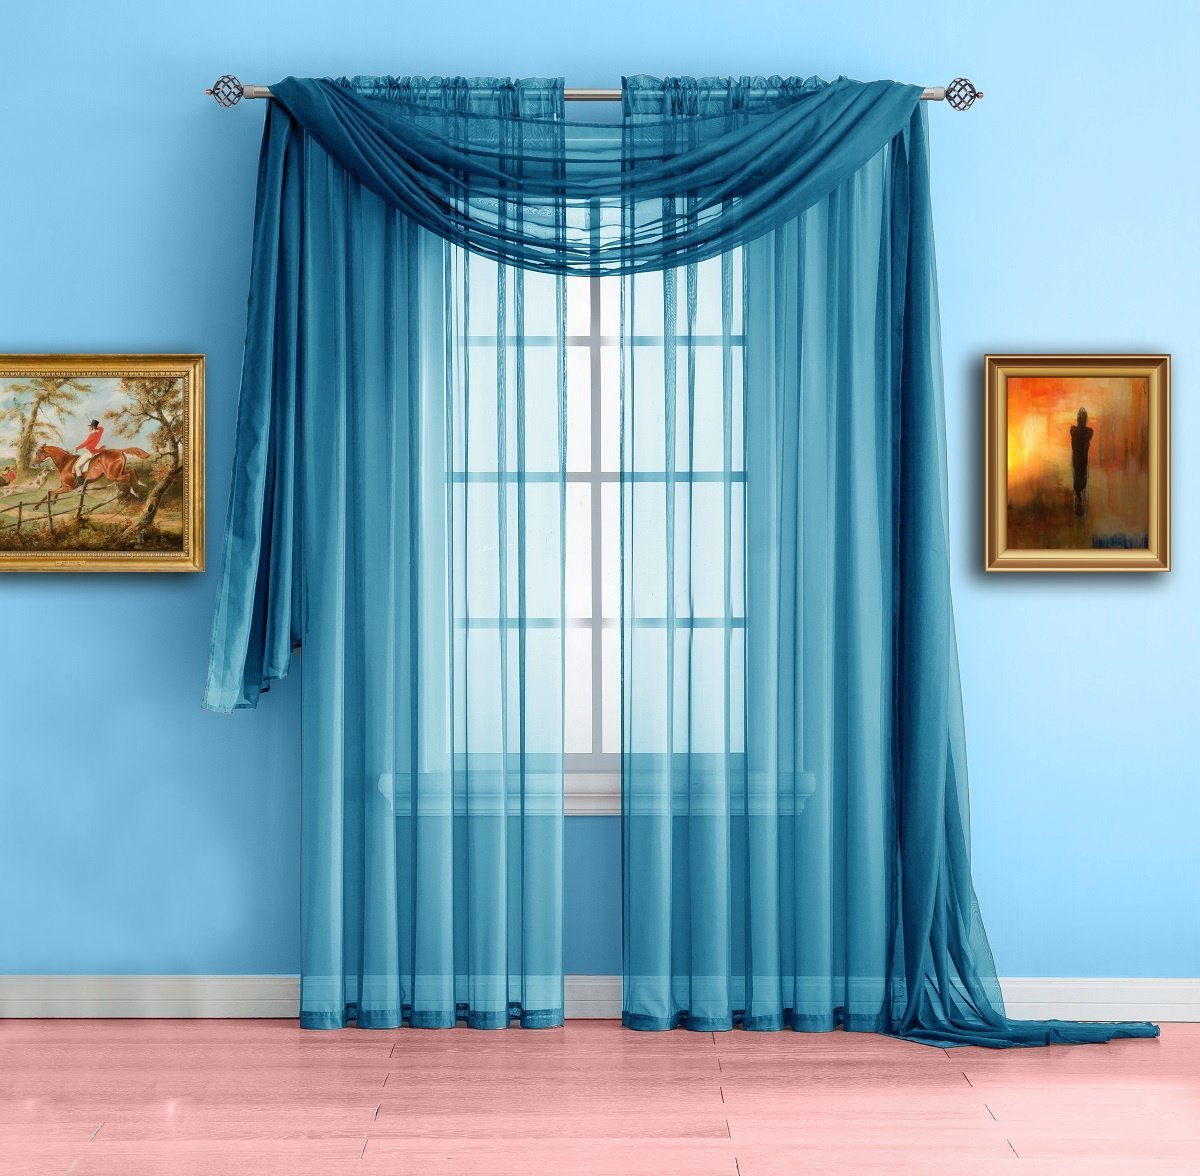 """Warm Home Designs Turquoise Blue Sheer Window Curtains. Each Voile Drape Is 56 X 63 Inches. Great for Kitchen, Living Room, Kids Bedroom or Office. 2 Fabric Panels Per Package. Color: Turquoise 63"""""""